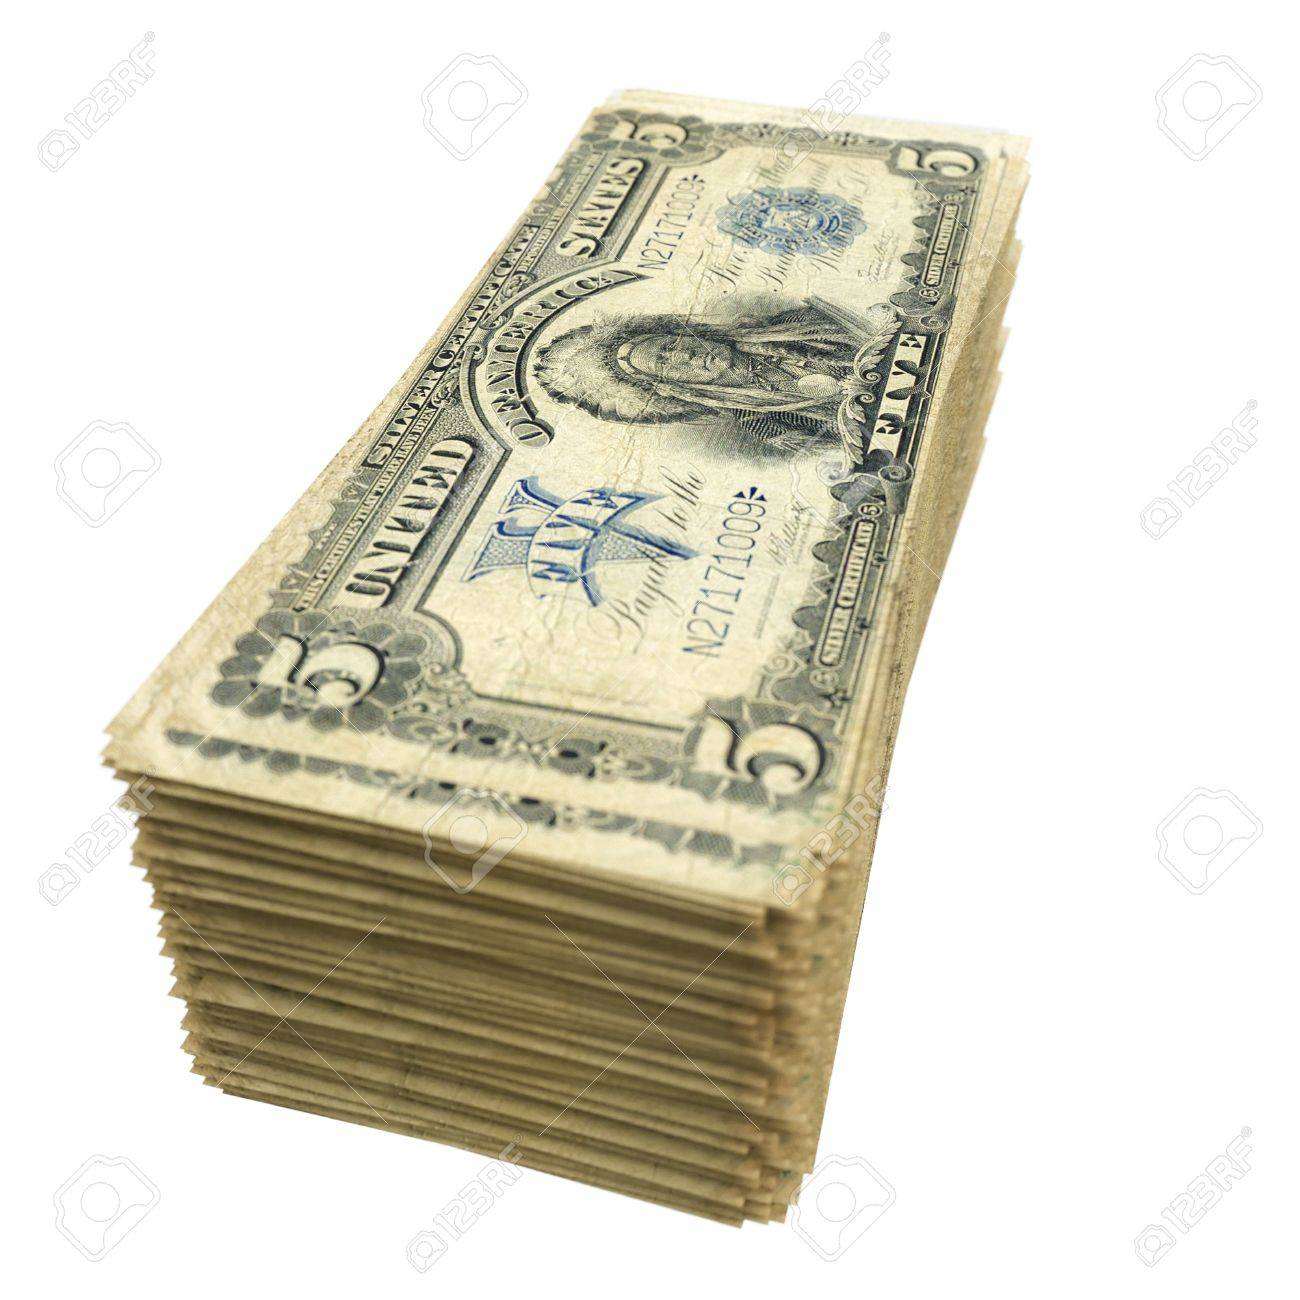 stack of vintage American money isolated on white background Stock Photo - 16562986